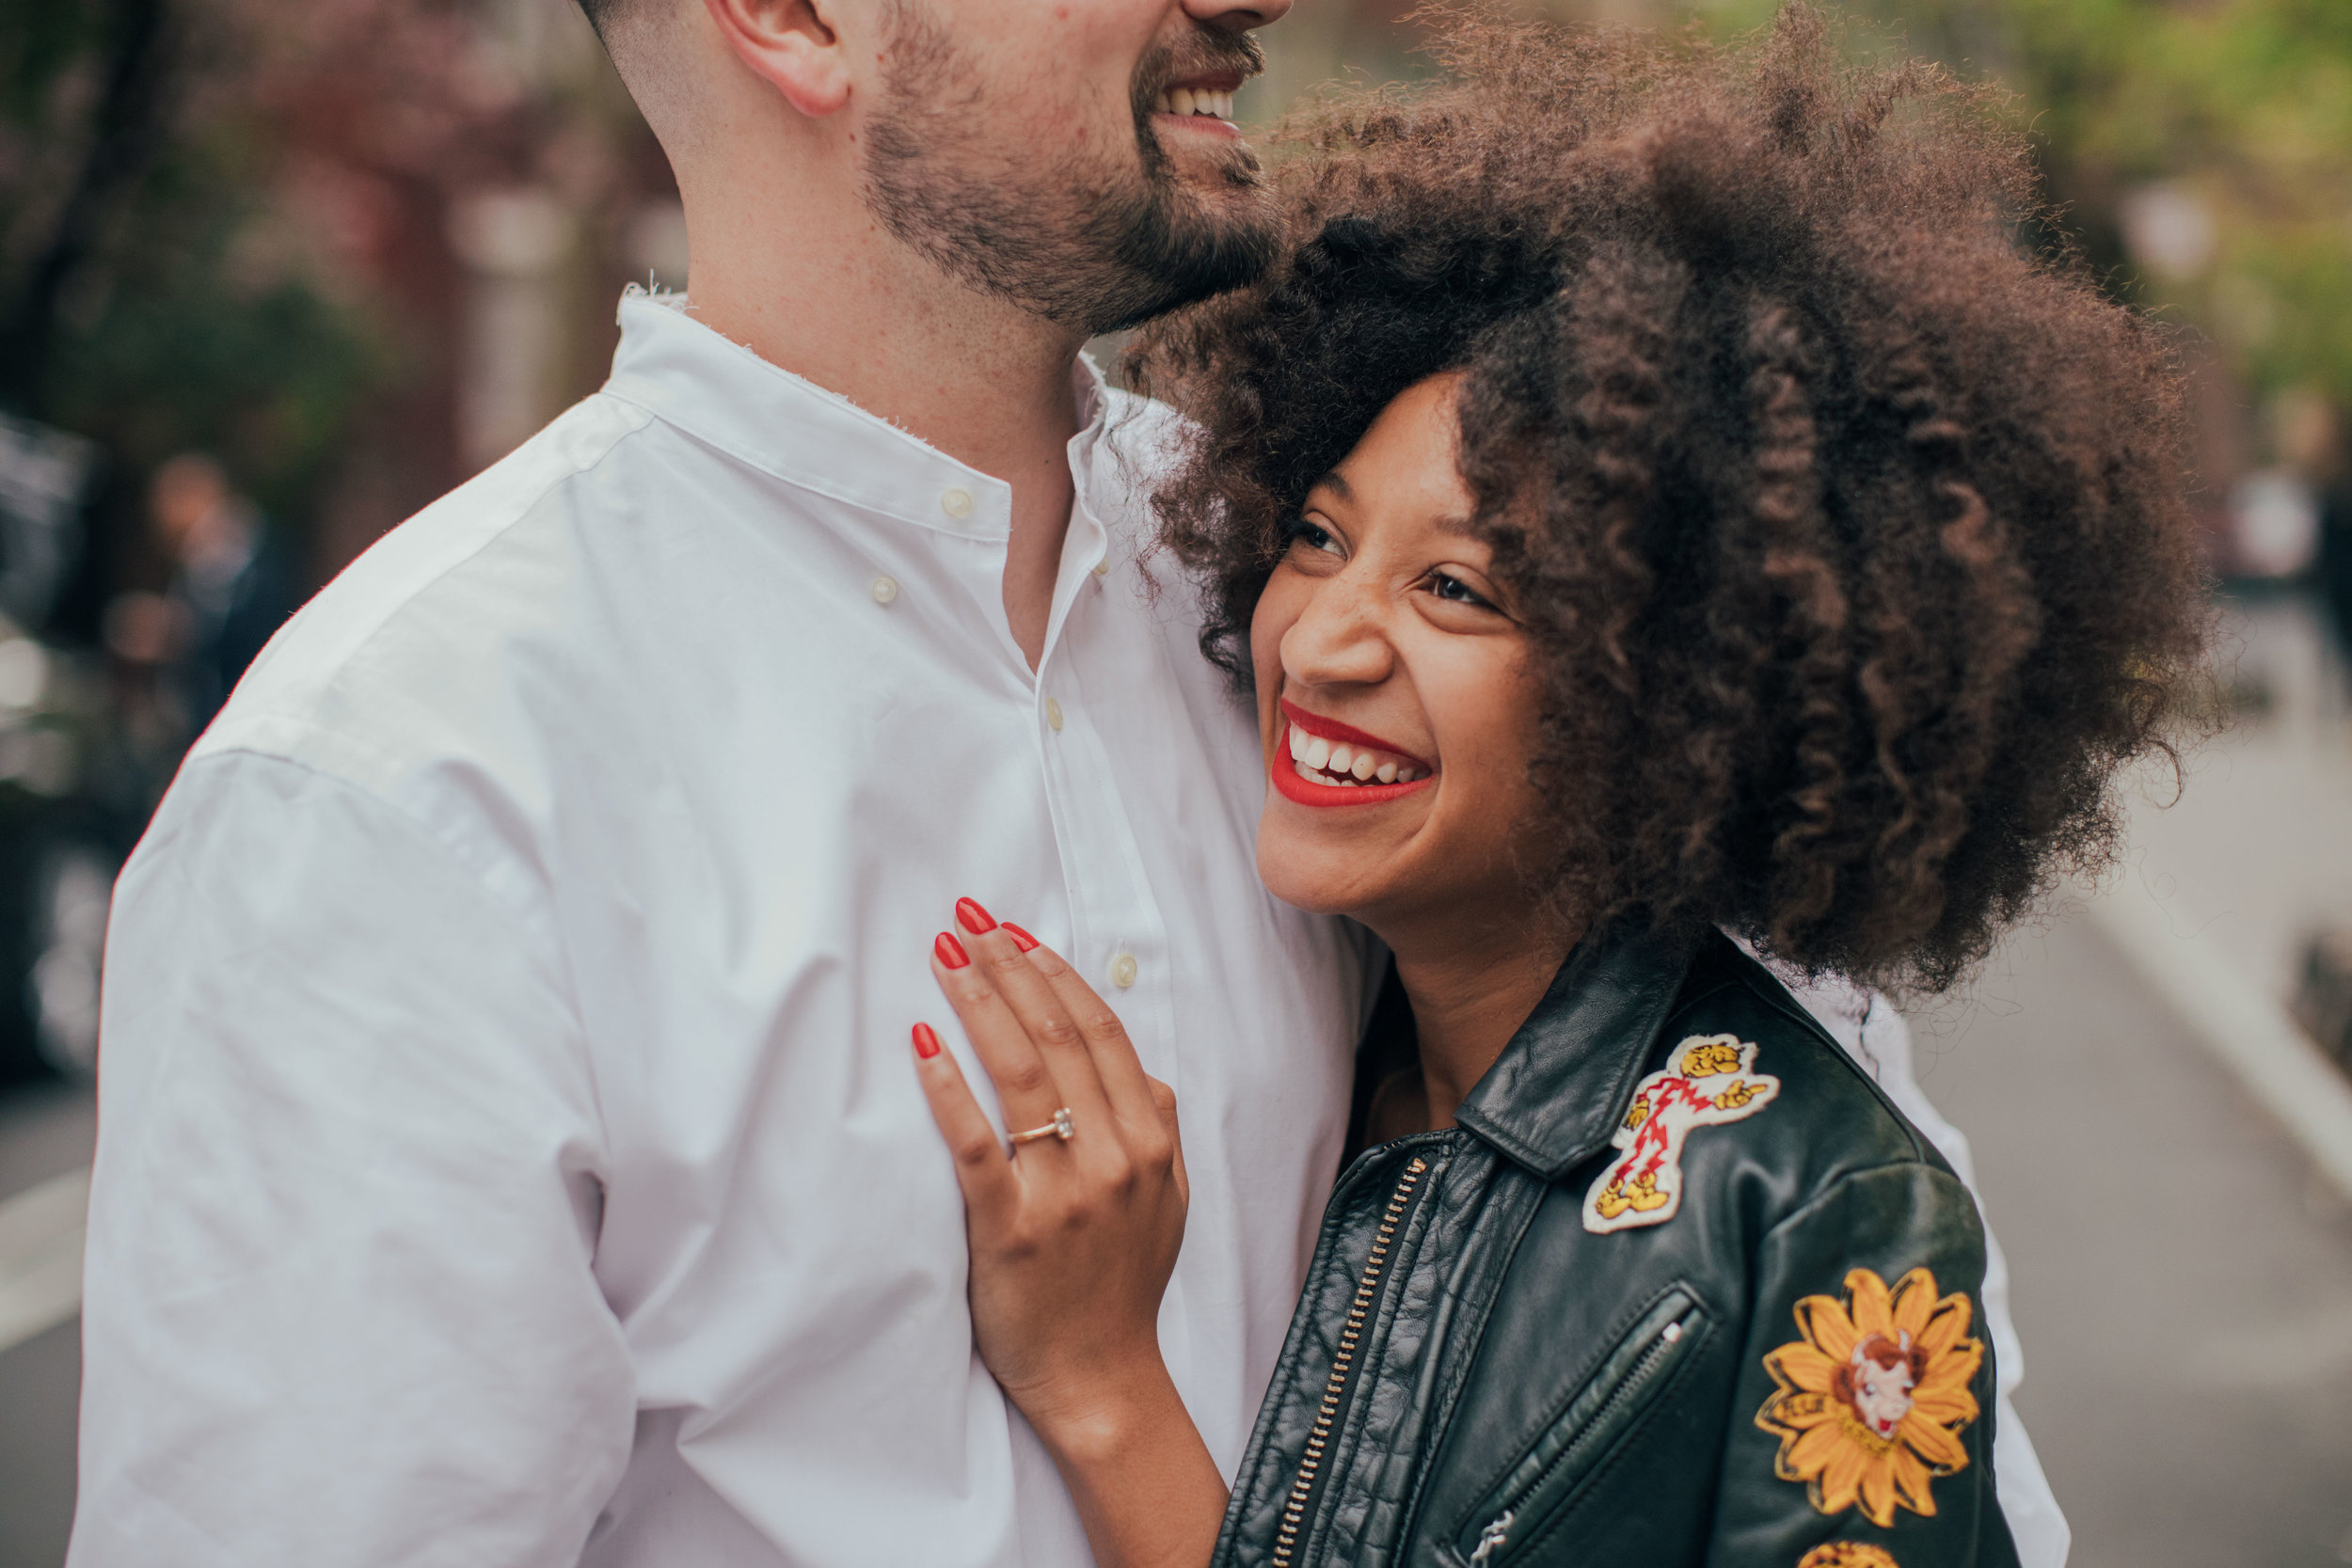 west_village_nyc_engagement (7 of 23).jpg